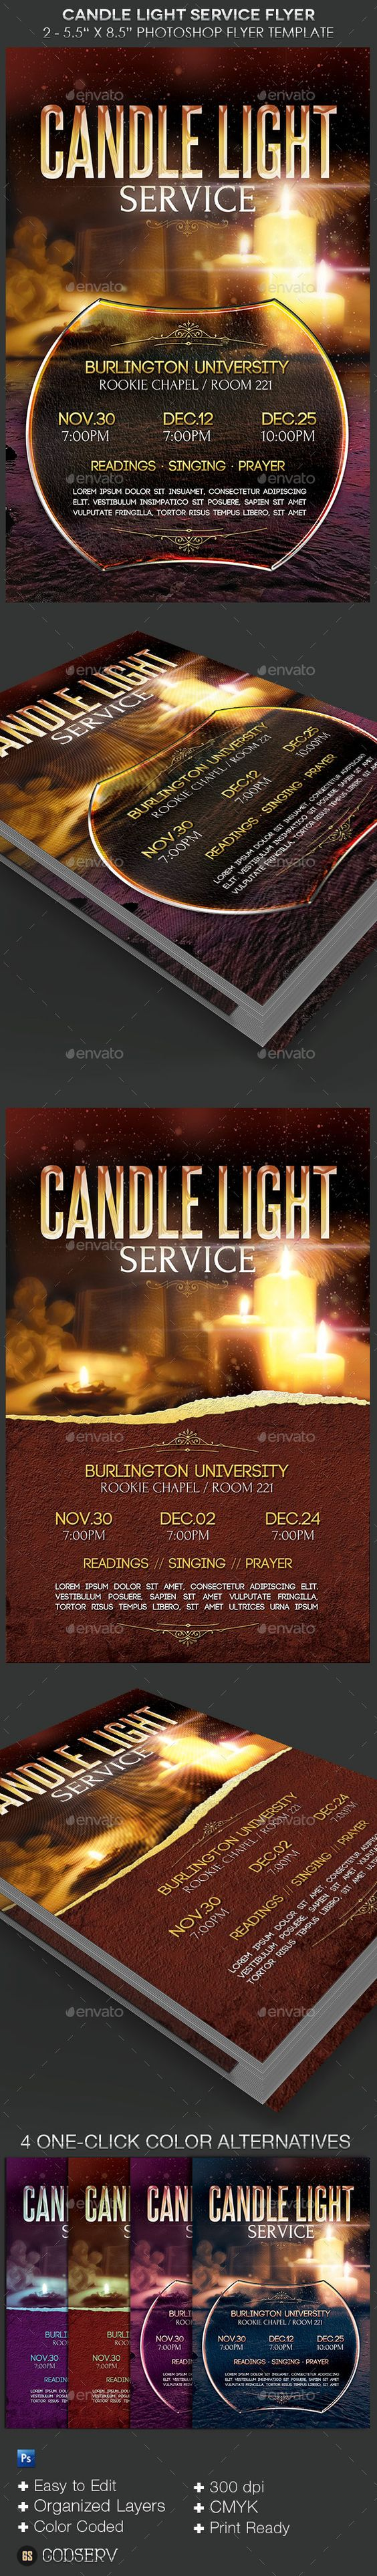 candle light service flyer templates flyer template church and buy candle light service flyer templates by godserv on graphicriver candle light service flyer template is for any church event during the christmas season